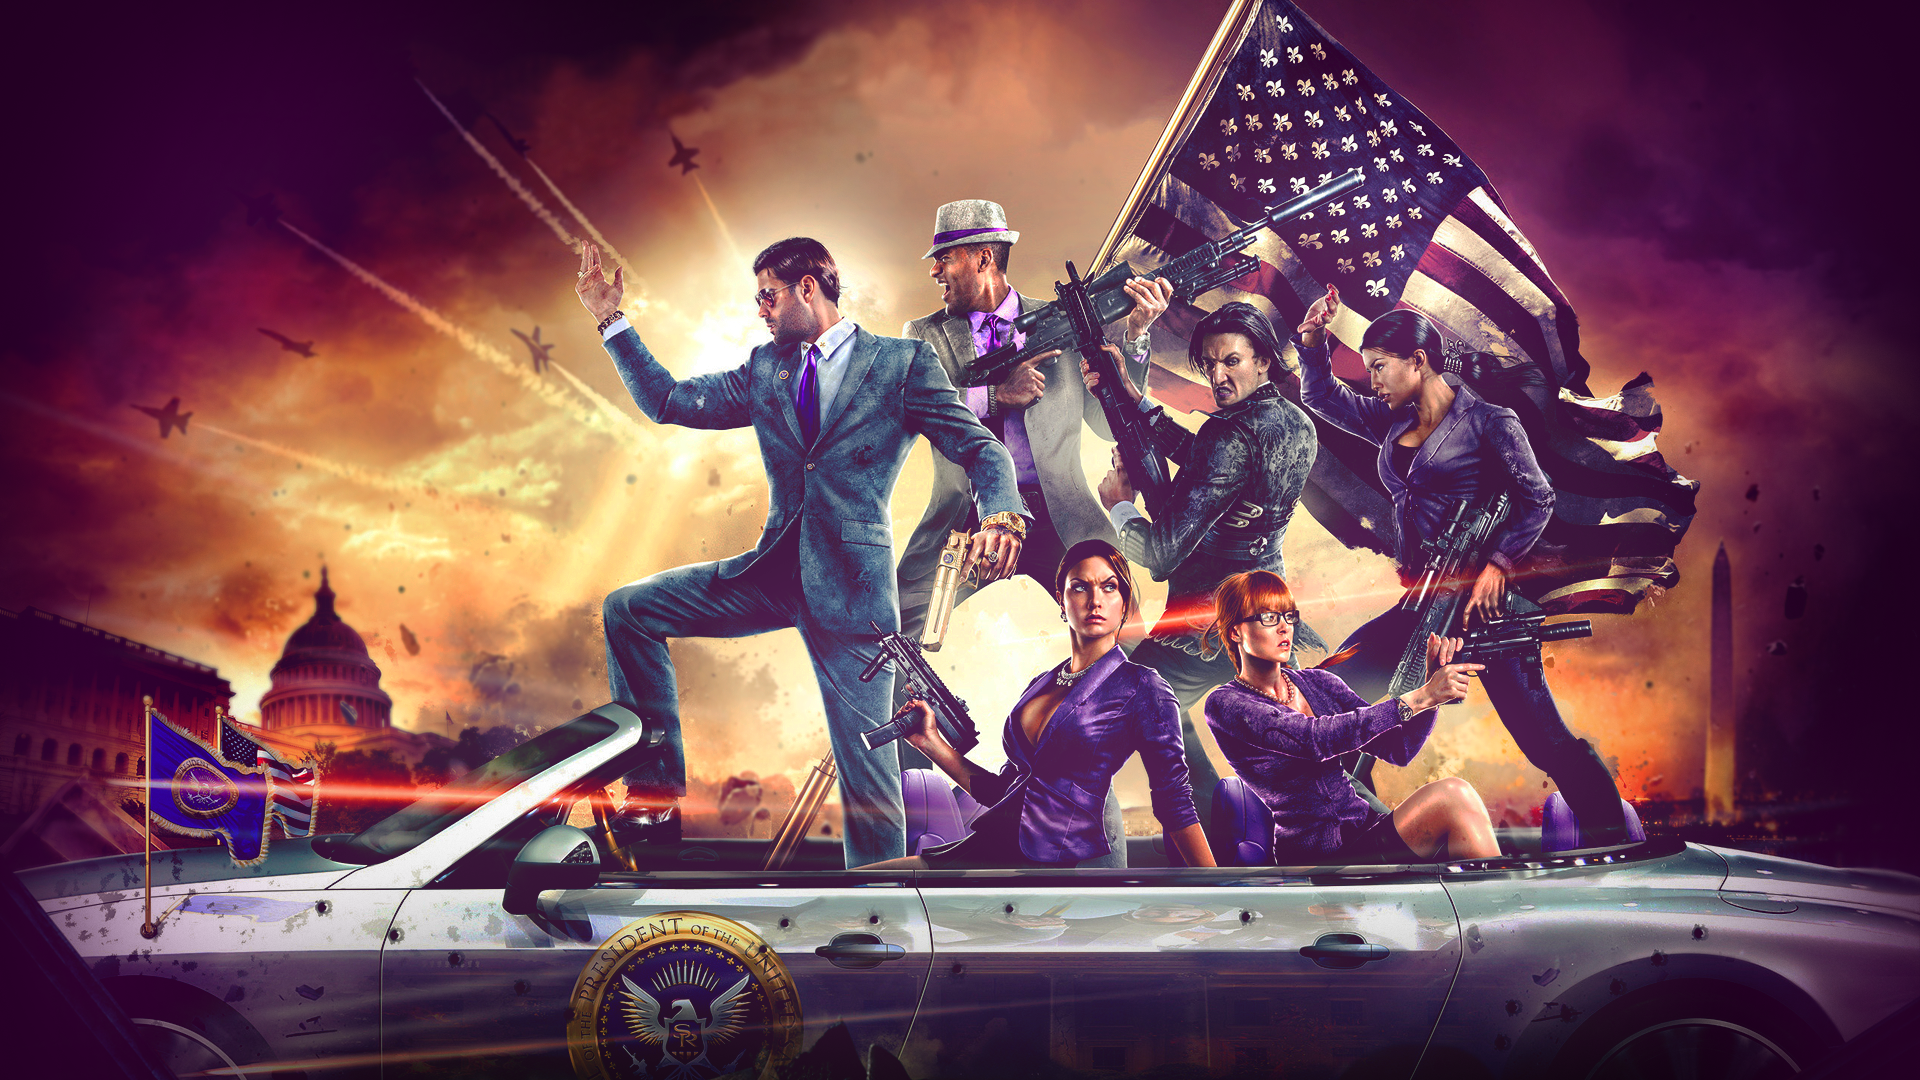 Saints Row 4 Wallpapers: Saints Row IV Wallpaper By PT-Desu On DeviantArt